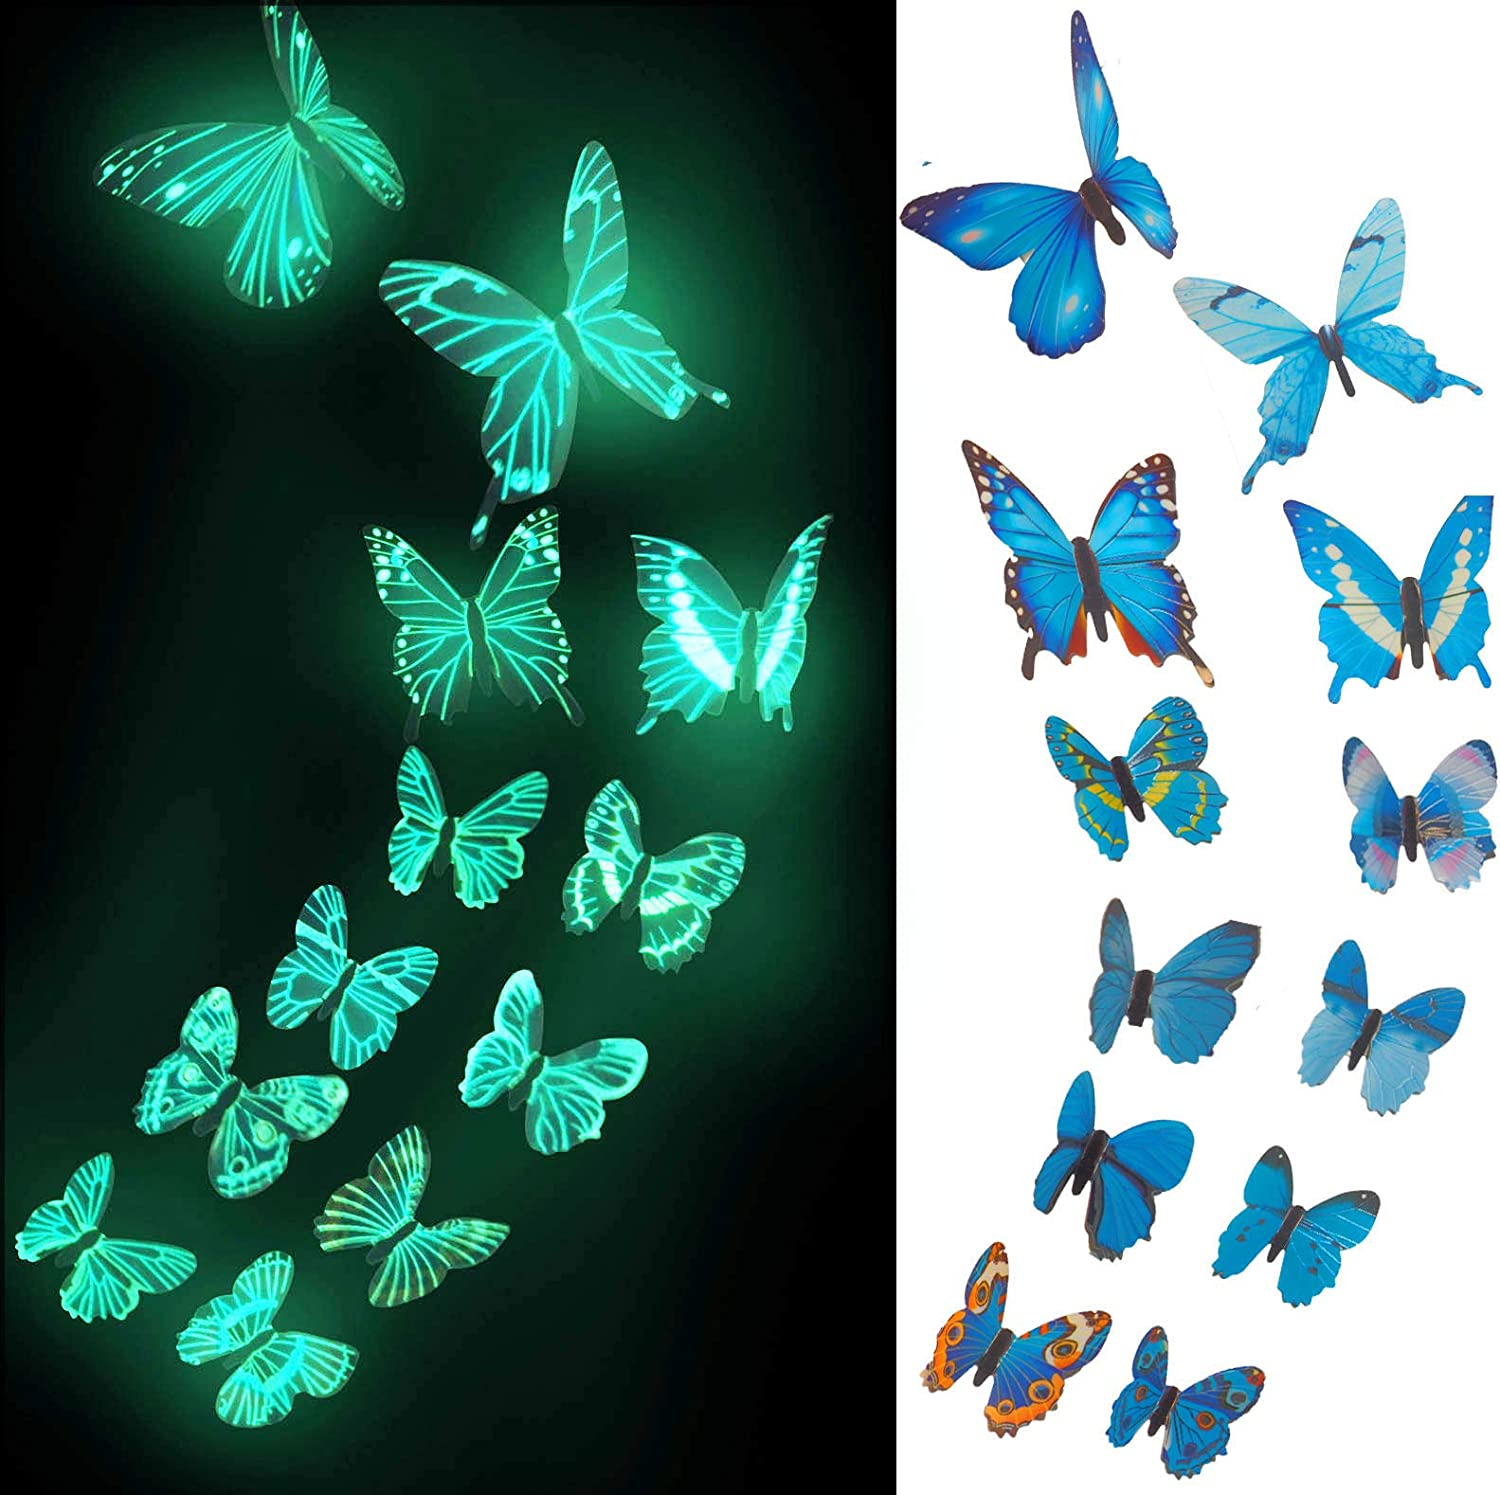 Butterfly Decals, Glow in The Dark 3D Butterfly Stickers for Ceiling or Wall Decor, Adhesive 12pcs Butterflies for Kids Bedroom Nursery Living Room,Luminous Create a Realistic Butterflyry Home Garden (Purple) (Purple) (Blue)